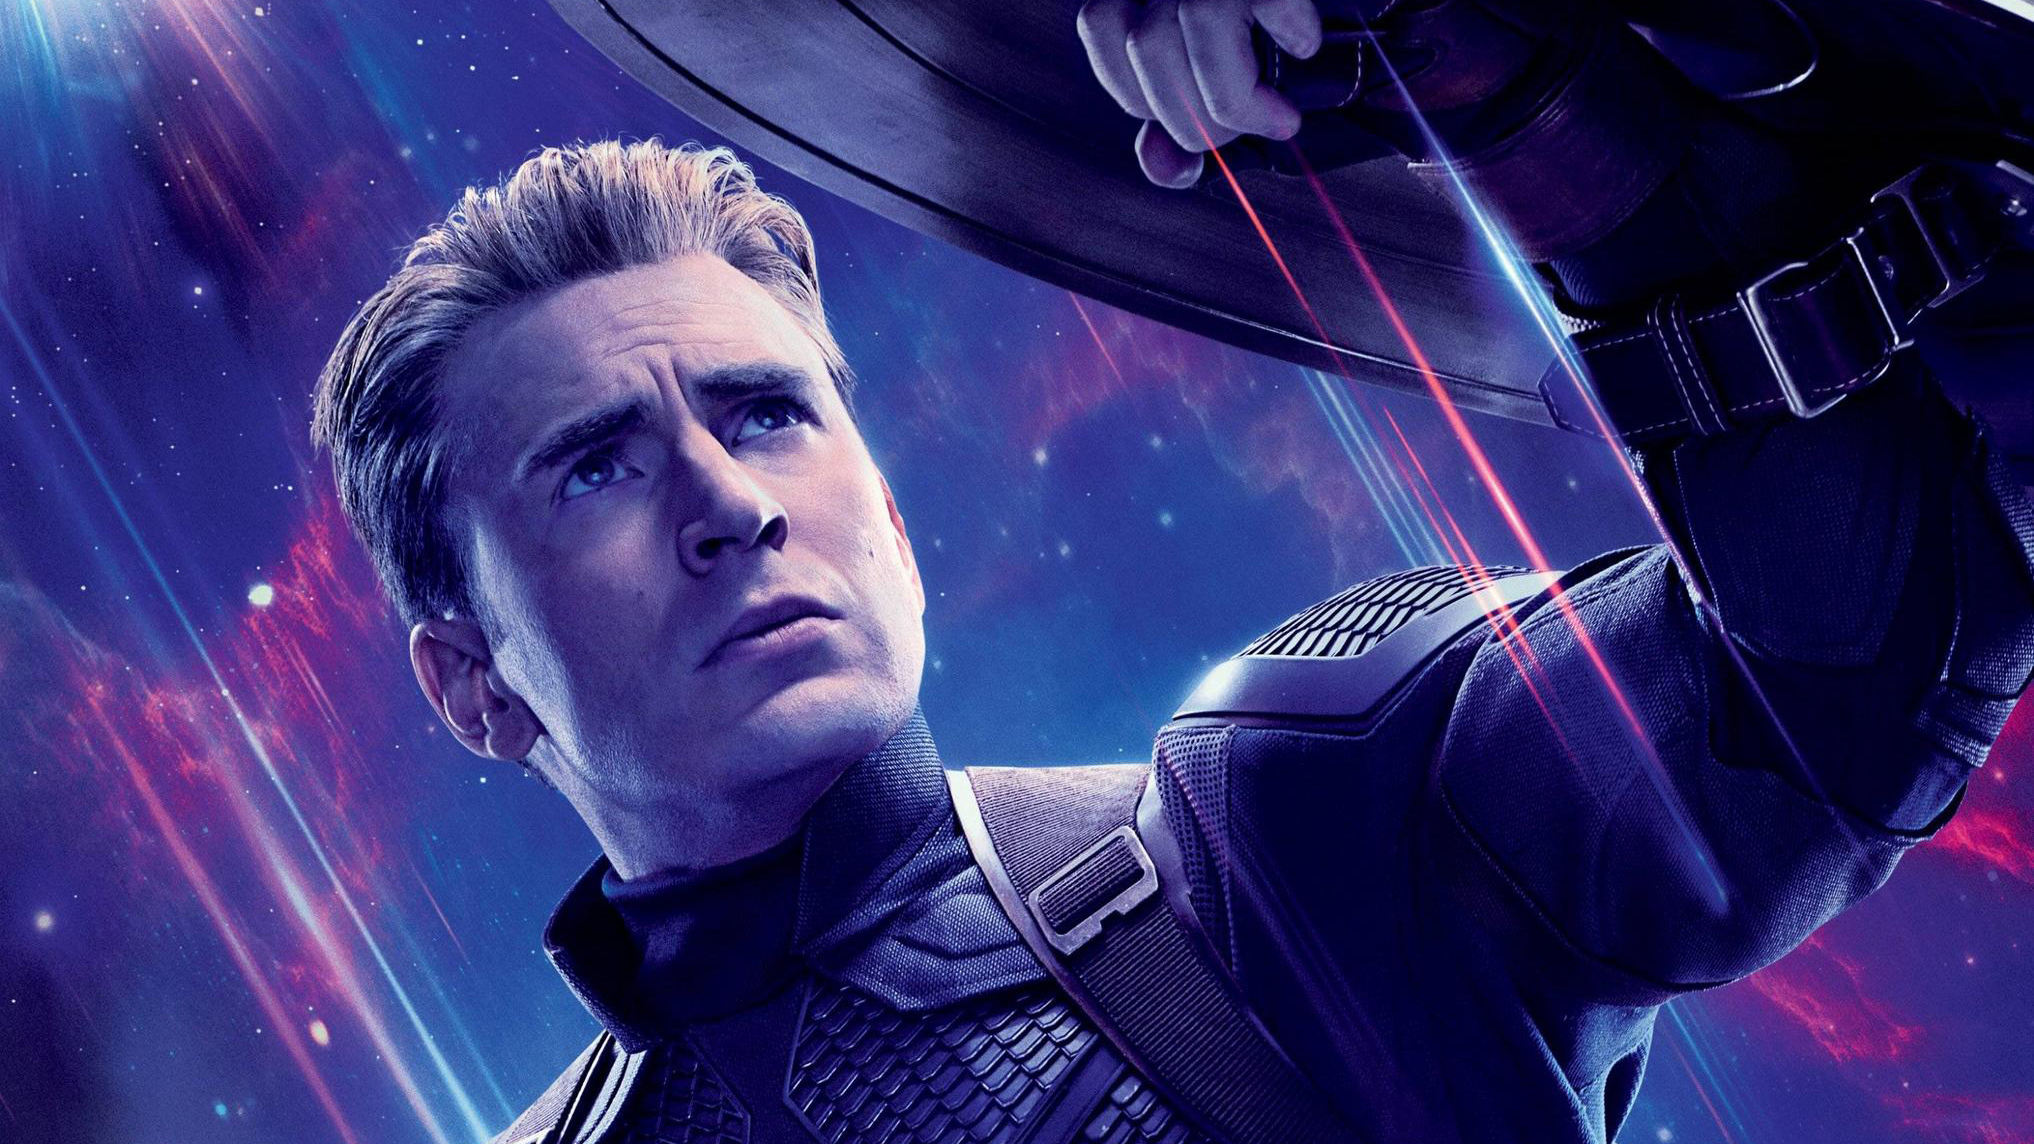 Captain America In Avengers Endgame Hd Movies 4k Wallpapers Images Backgrounds Photos And Pictures